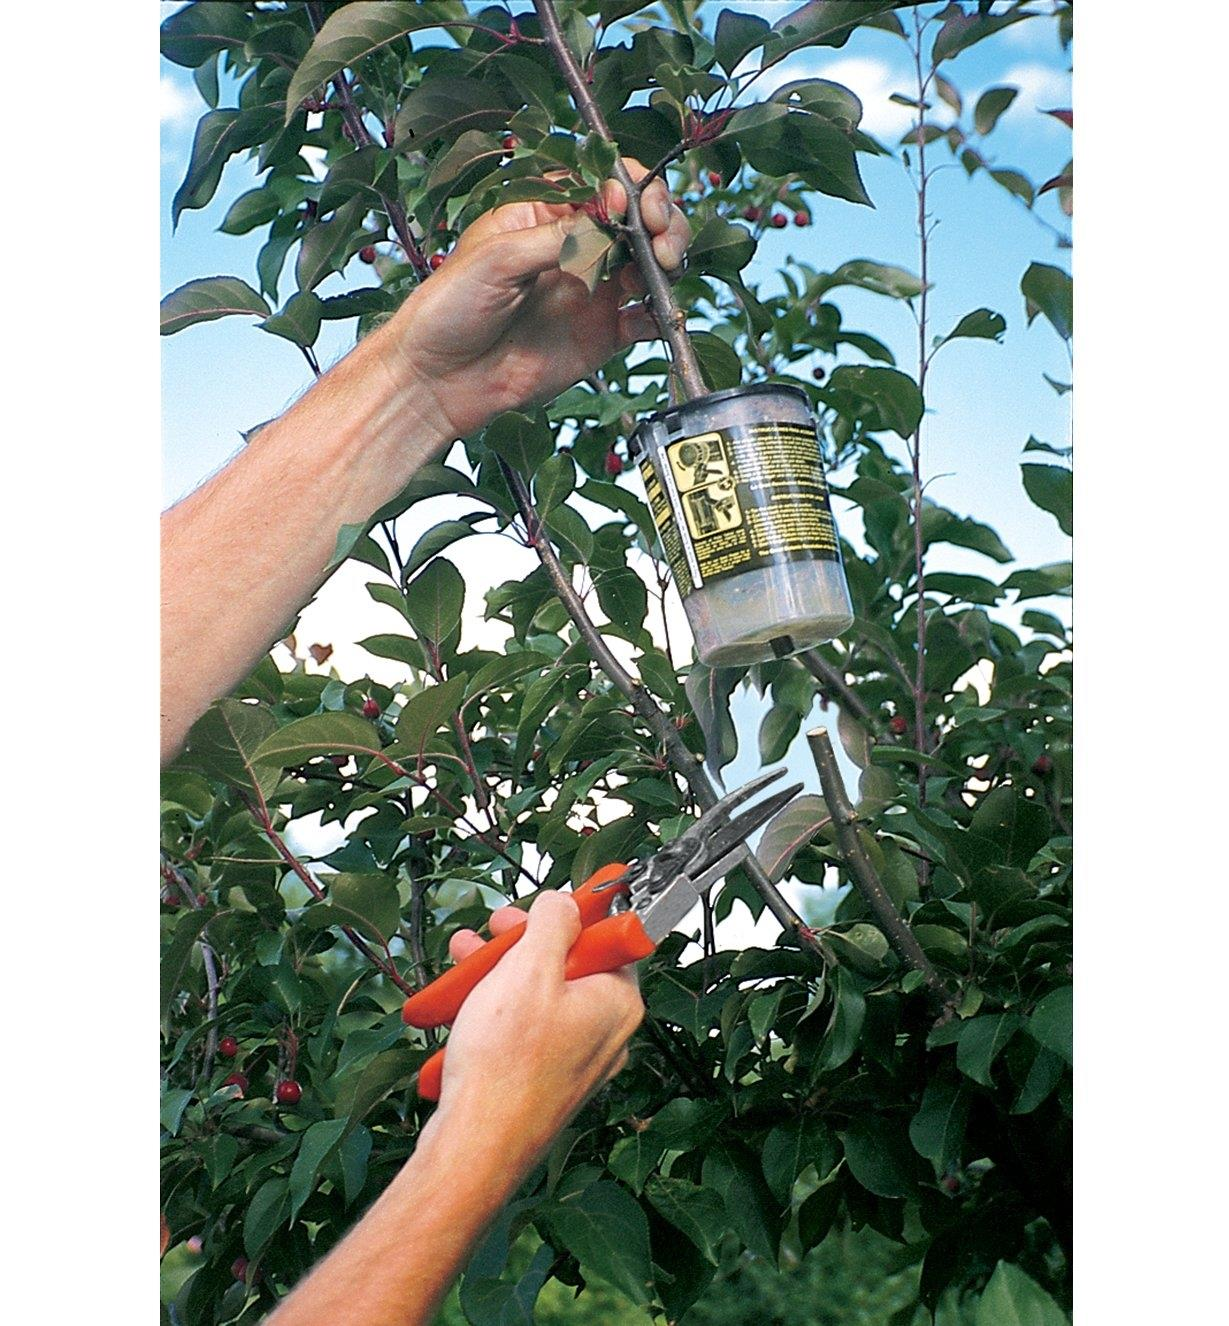 Cutting a tree branch below the rooter pot attached to it